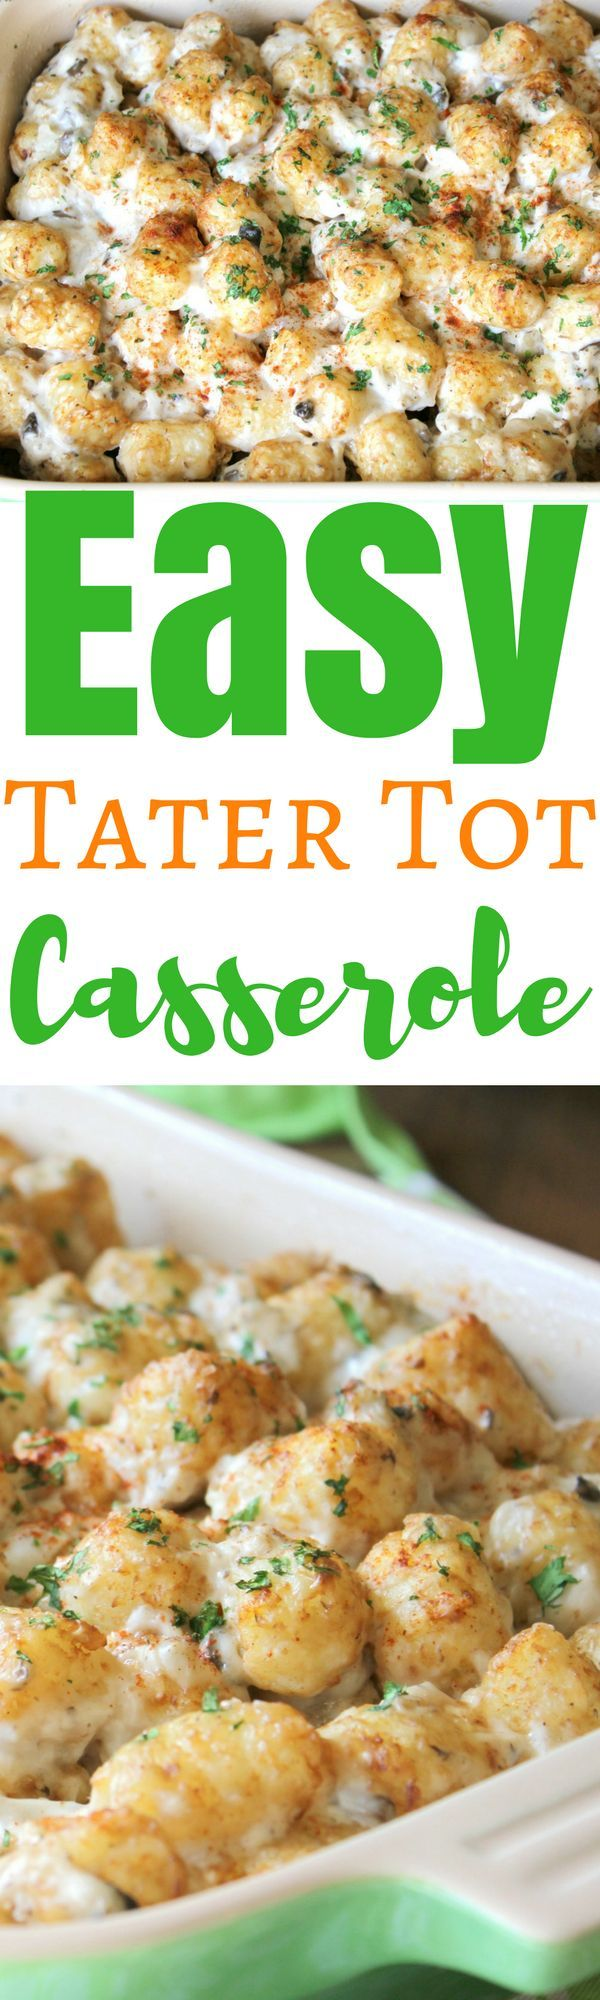 When you're not sure what to cook for dinner, this Easy Tater Tot Casserole recipe is the perfect option. A quick & easy meal the family loves. via /simplymommy/